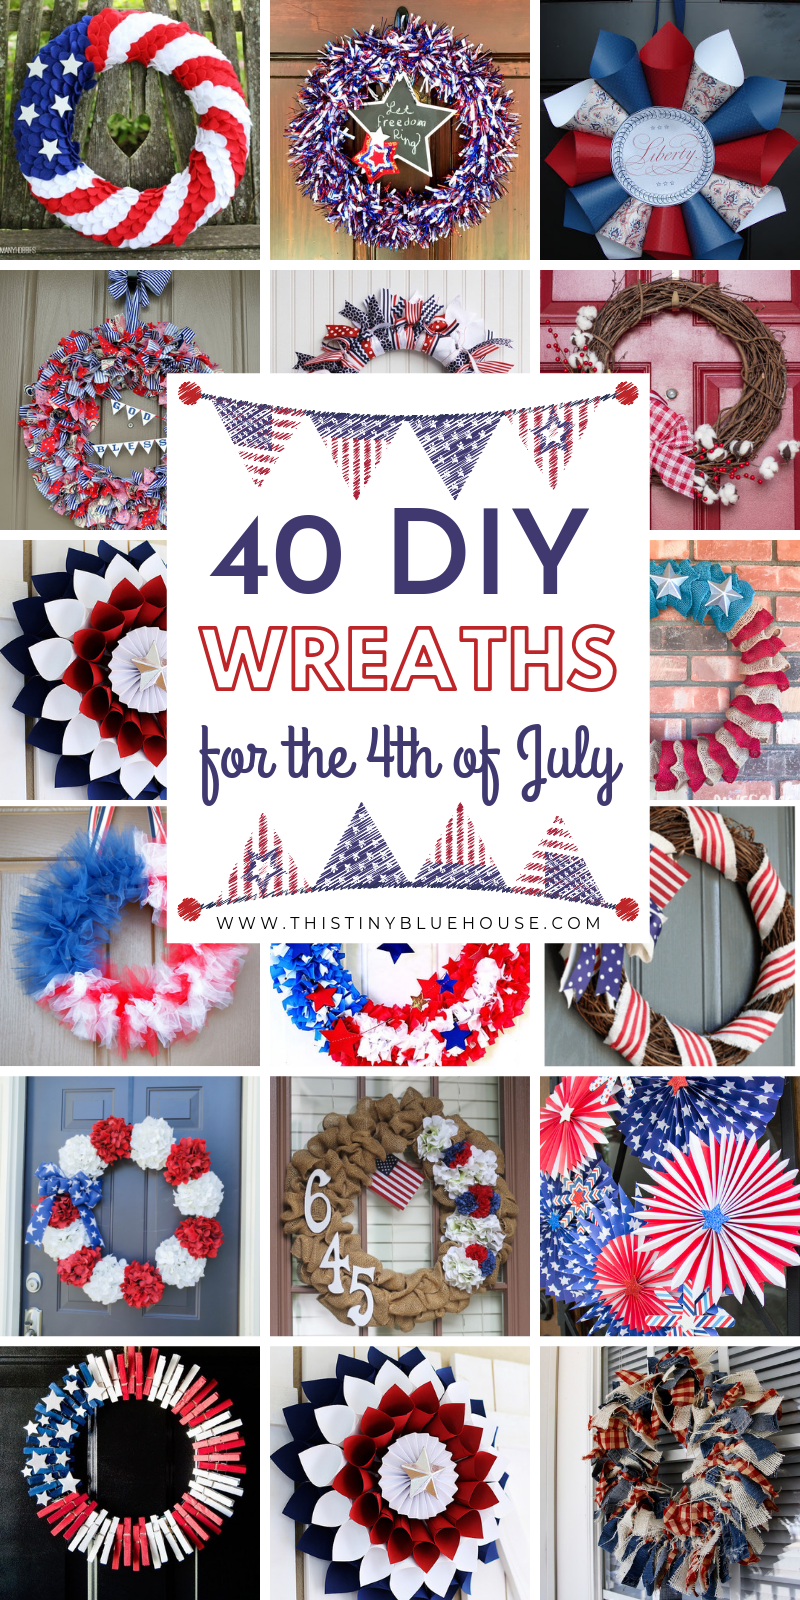 40+ Patriotic DIY Dollar Store 4th Of July Wreaths - This Tiny Blue House #holidaysinjuly